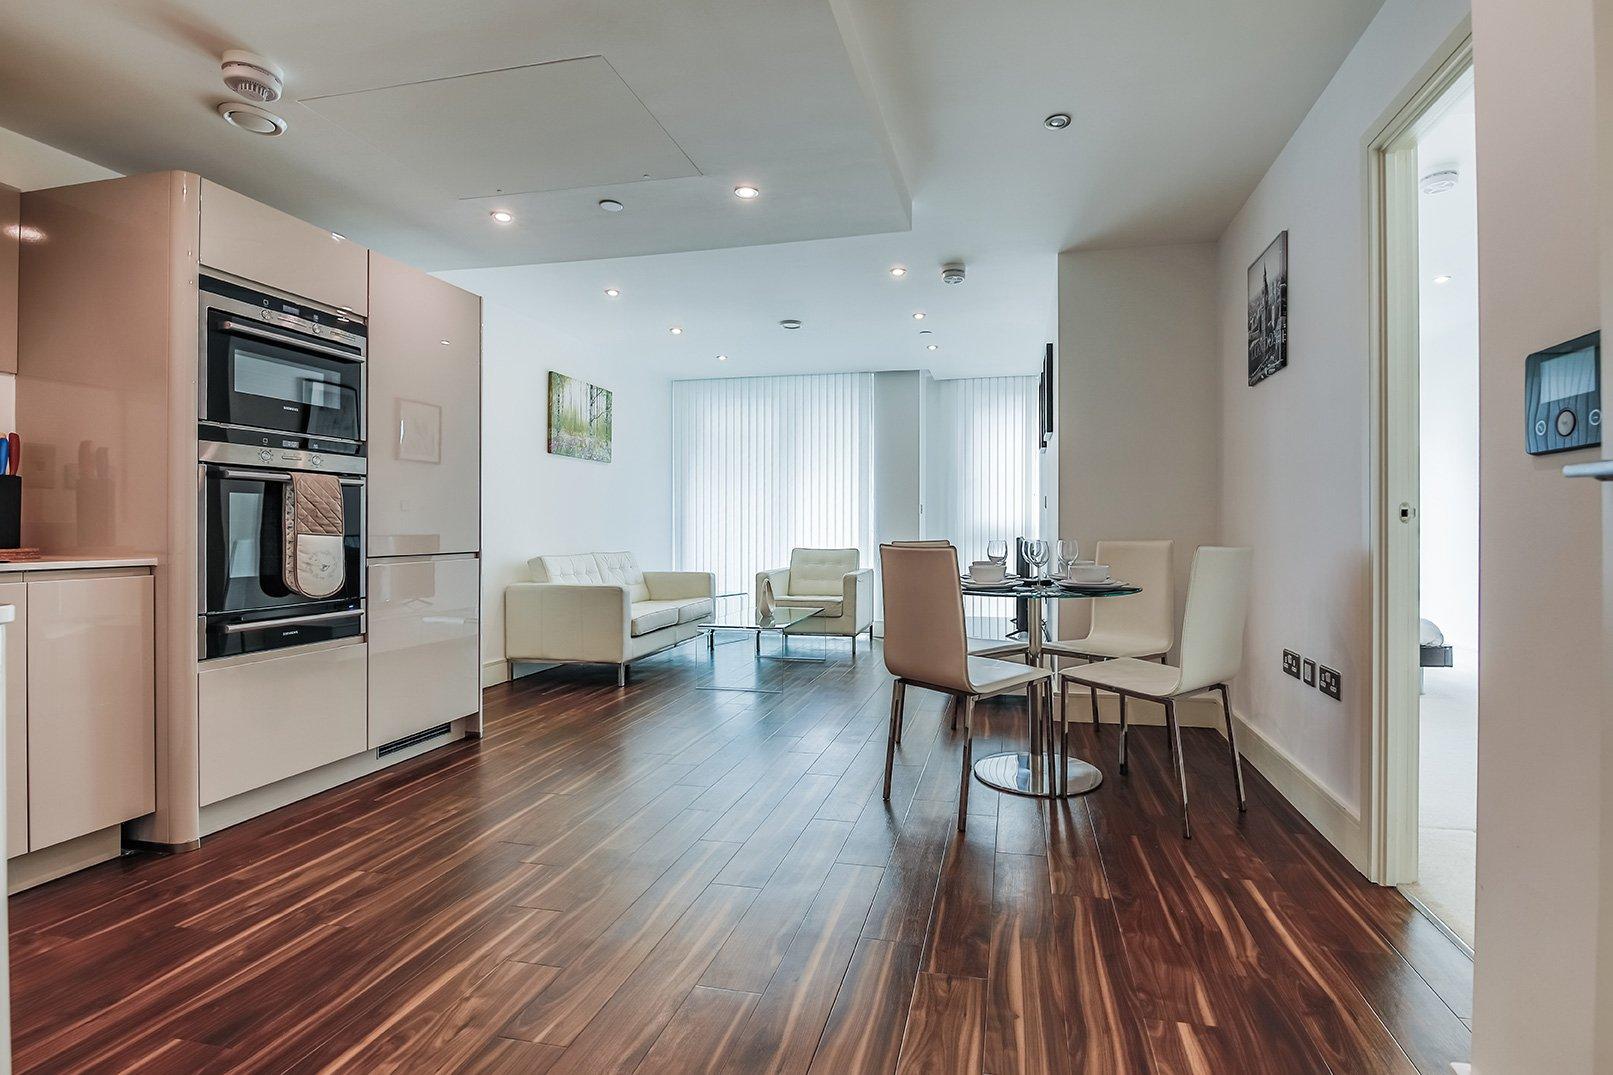 Stunning-Serviced-Apartments---Short-Stay-Apartments-Aldgate---Book-your-accommodation-with-Urban-Stay-today!---Free-WiFi---Meet-and-Greet